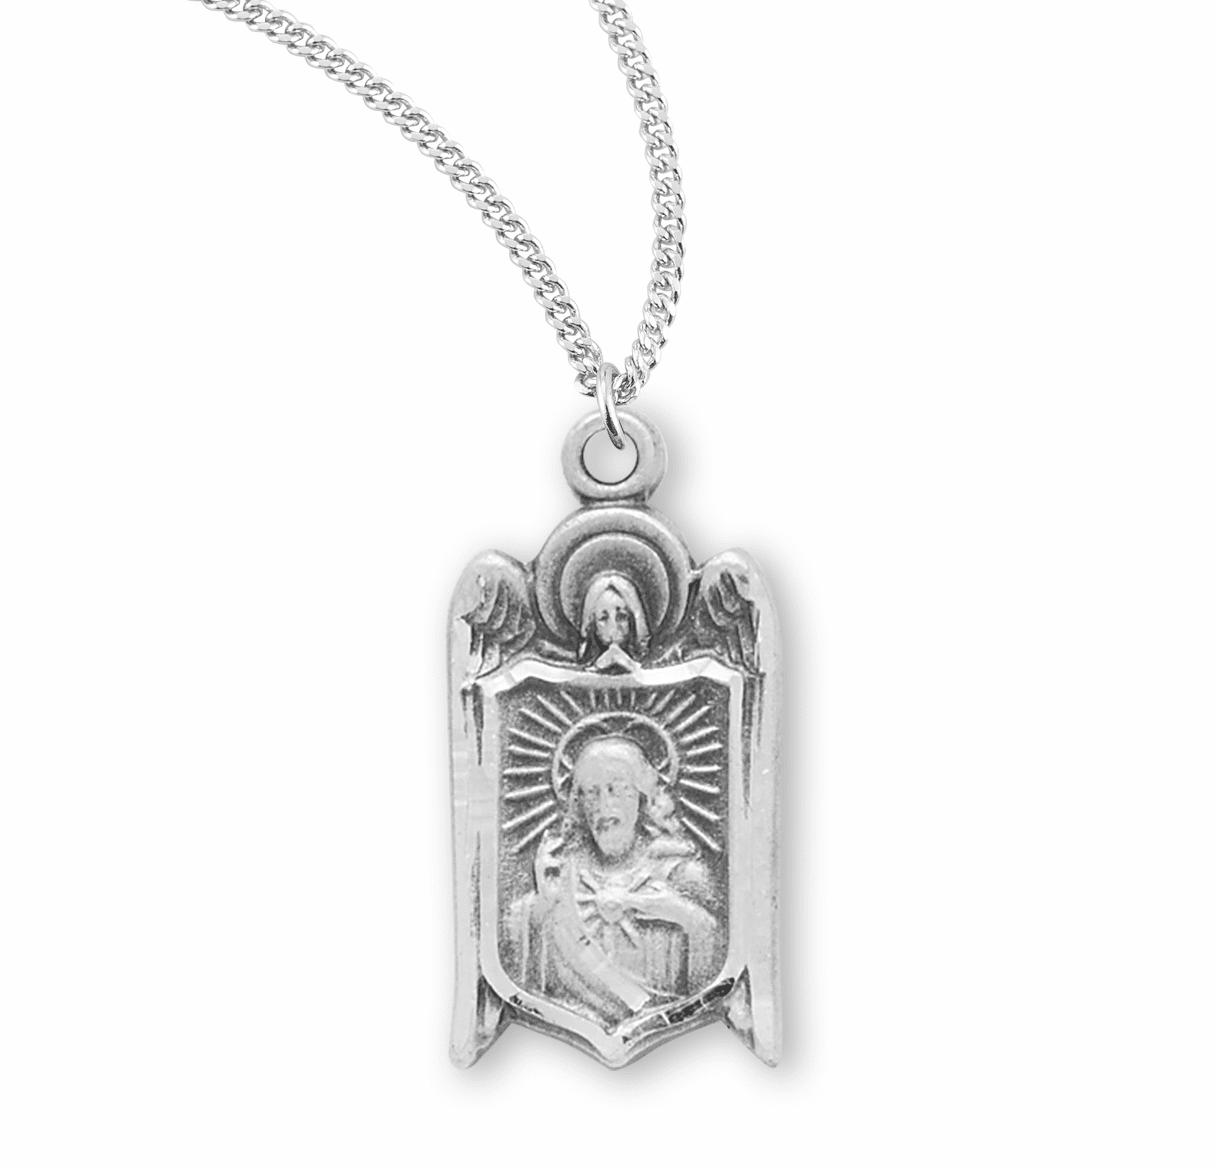 Angel Shields Scapular Sacred Heart of Jesus Christ Medal Necklace by HMH Religious